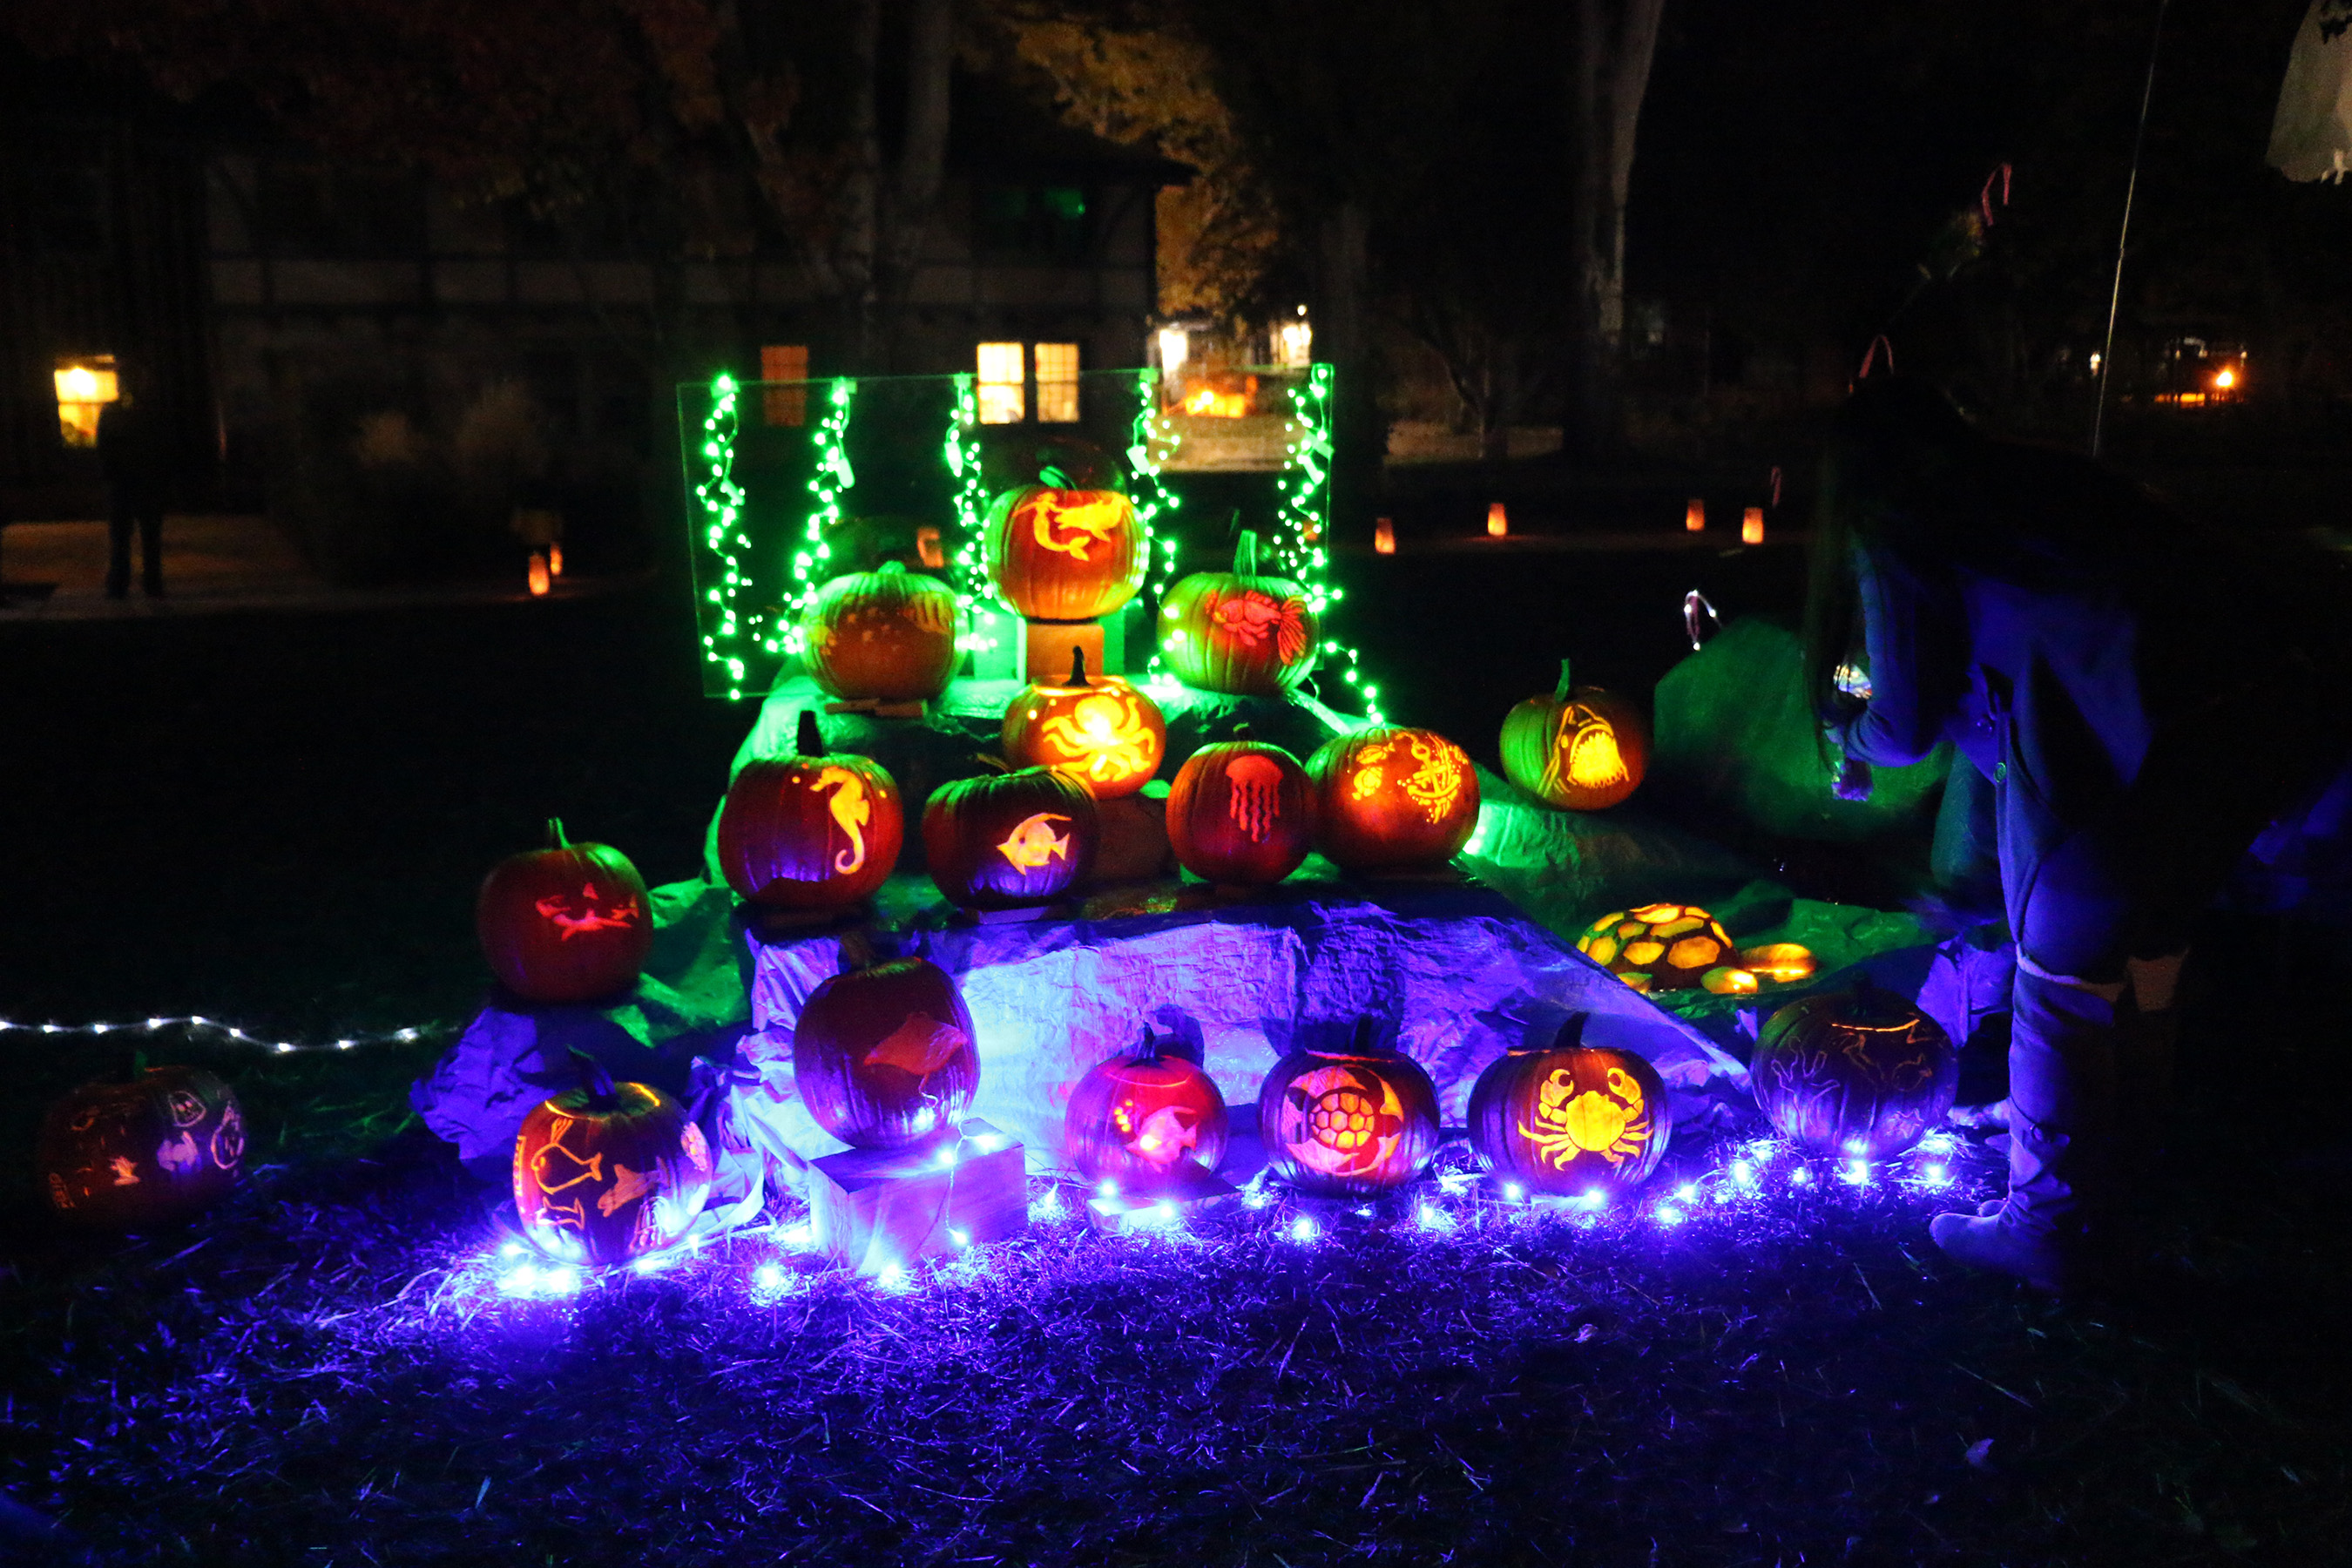 Residents of Los Alamos will proudly display their carved pumpkins, using Pumpkin Masters tools, later that evening in the Los Alamos Arts Council's annual Pumpkin Glow event. Photo credit: Lauren McDaniel